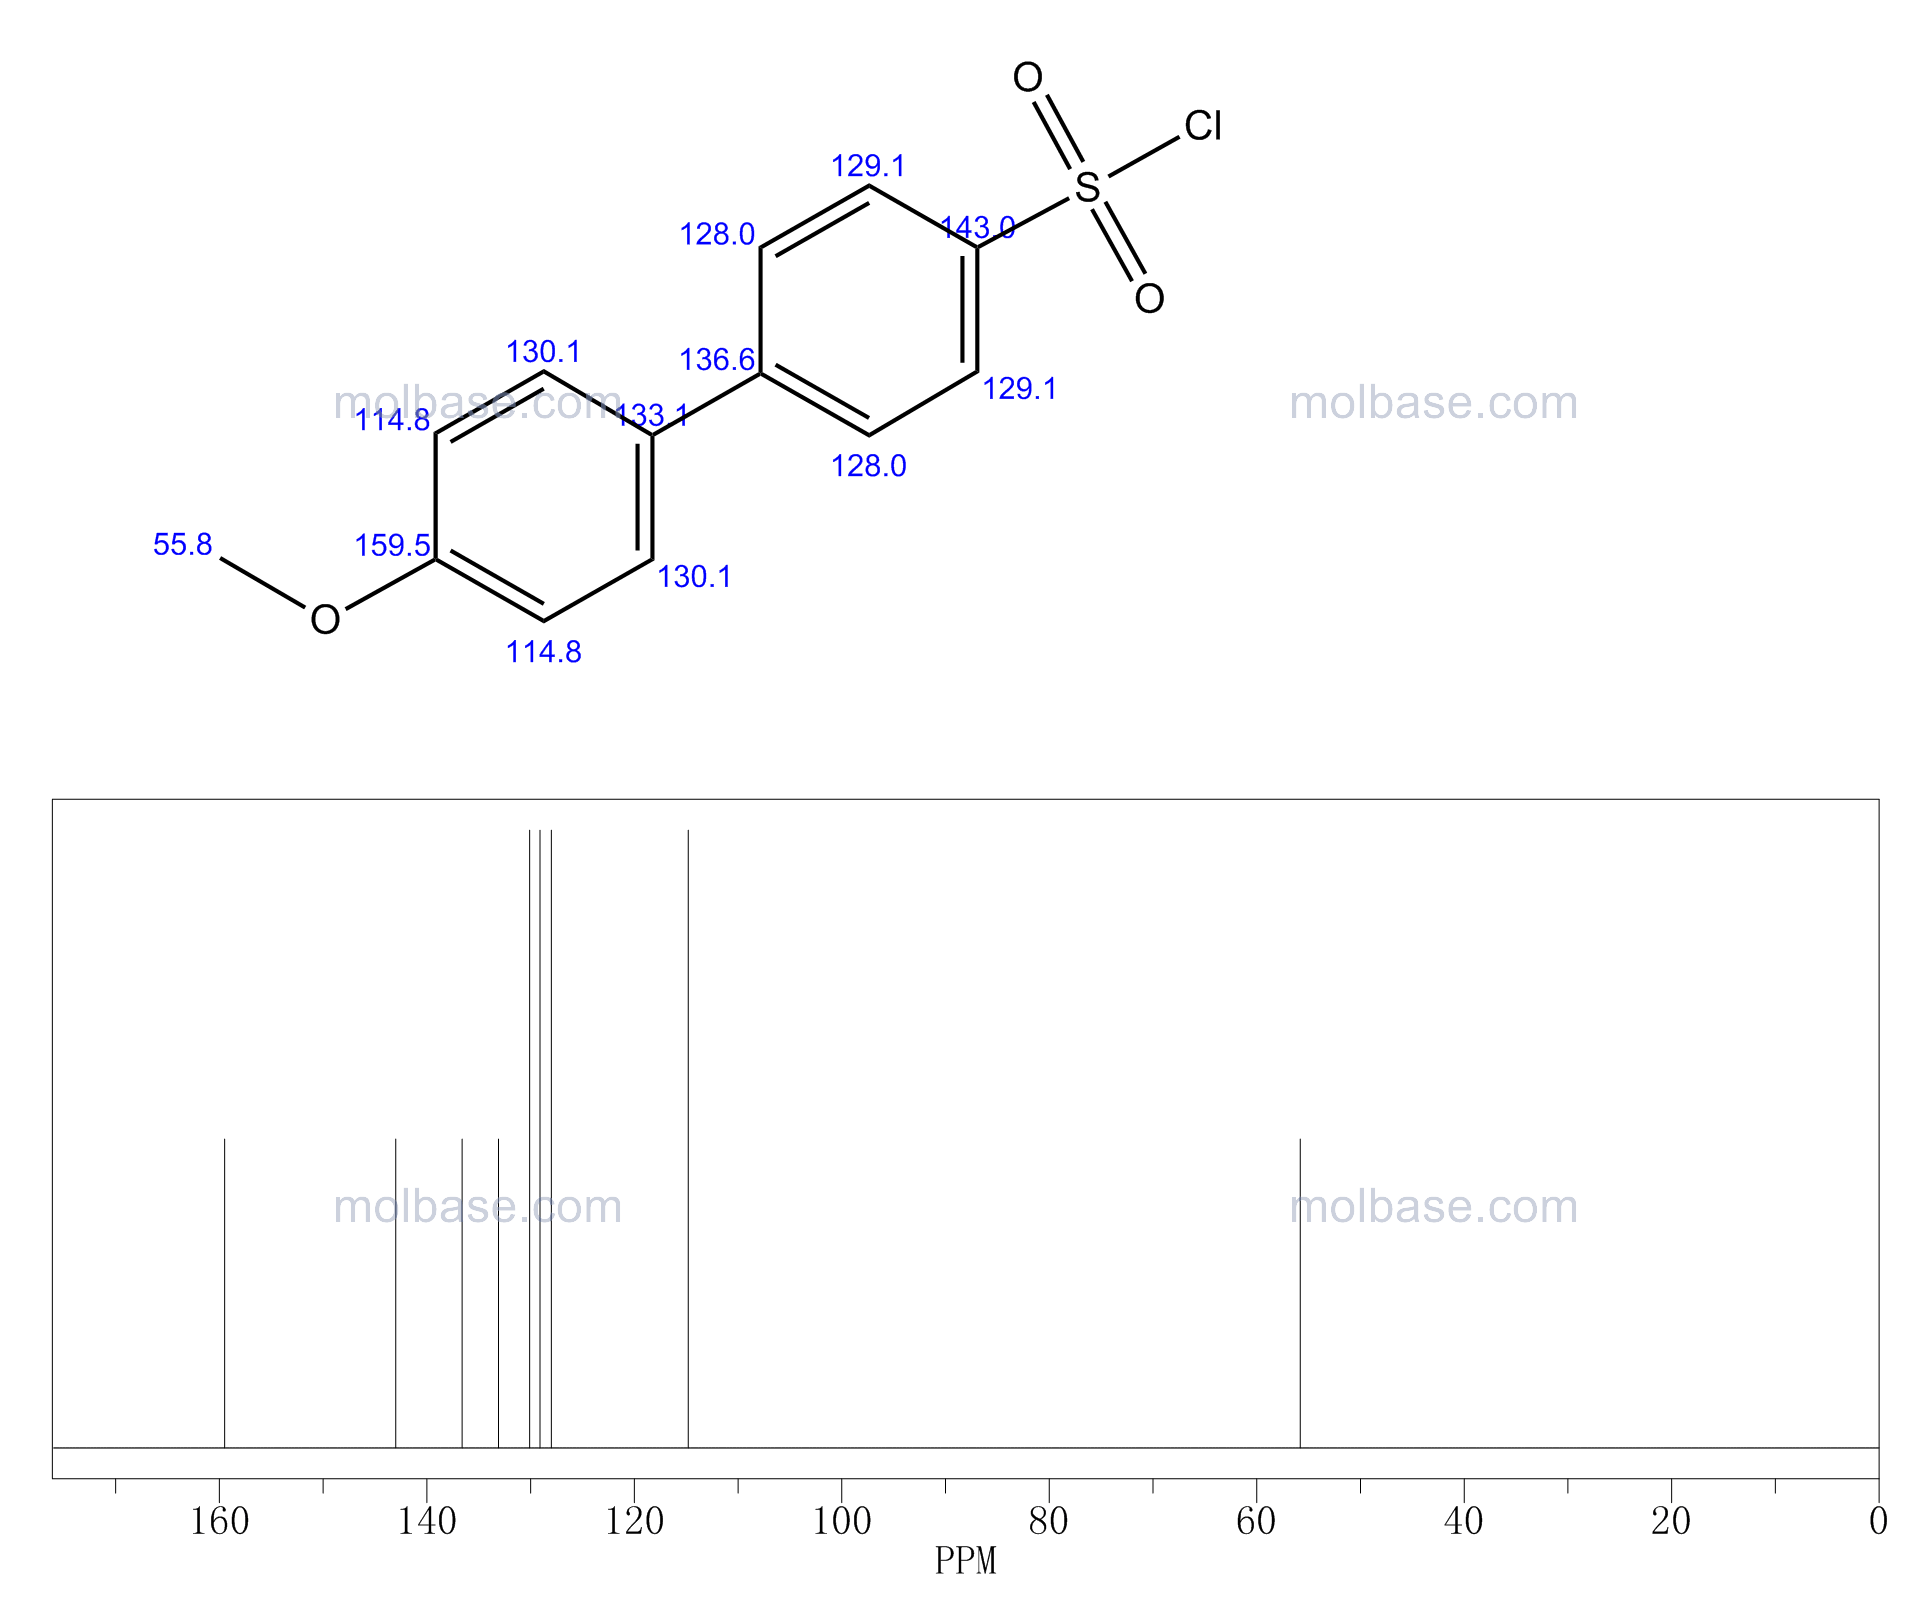 4'-Methoxybiphenyl-4-sulfonyl chloride NMR spectra analysis, Chemical CAS NO. 202752-04-3 NMR spectral analysis, 4'-Methoxybiphenyl-4-sulfonyl chloride C-NMR spectrum